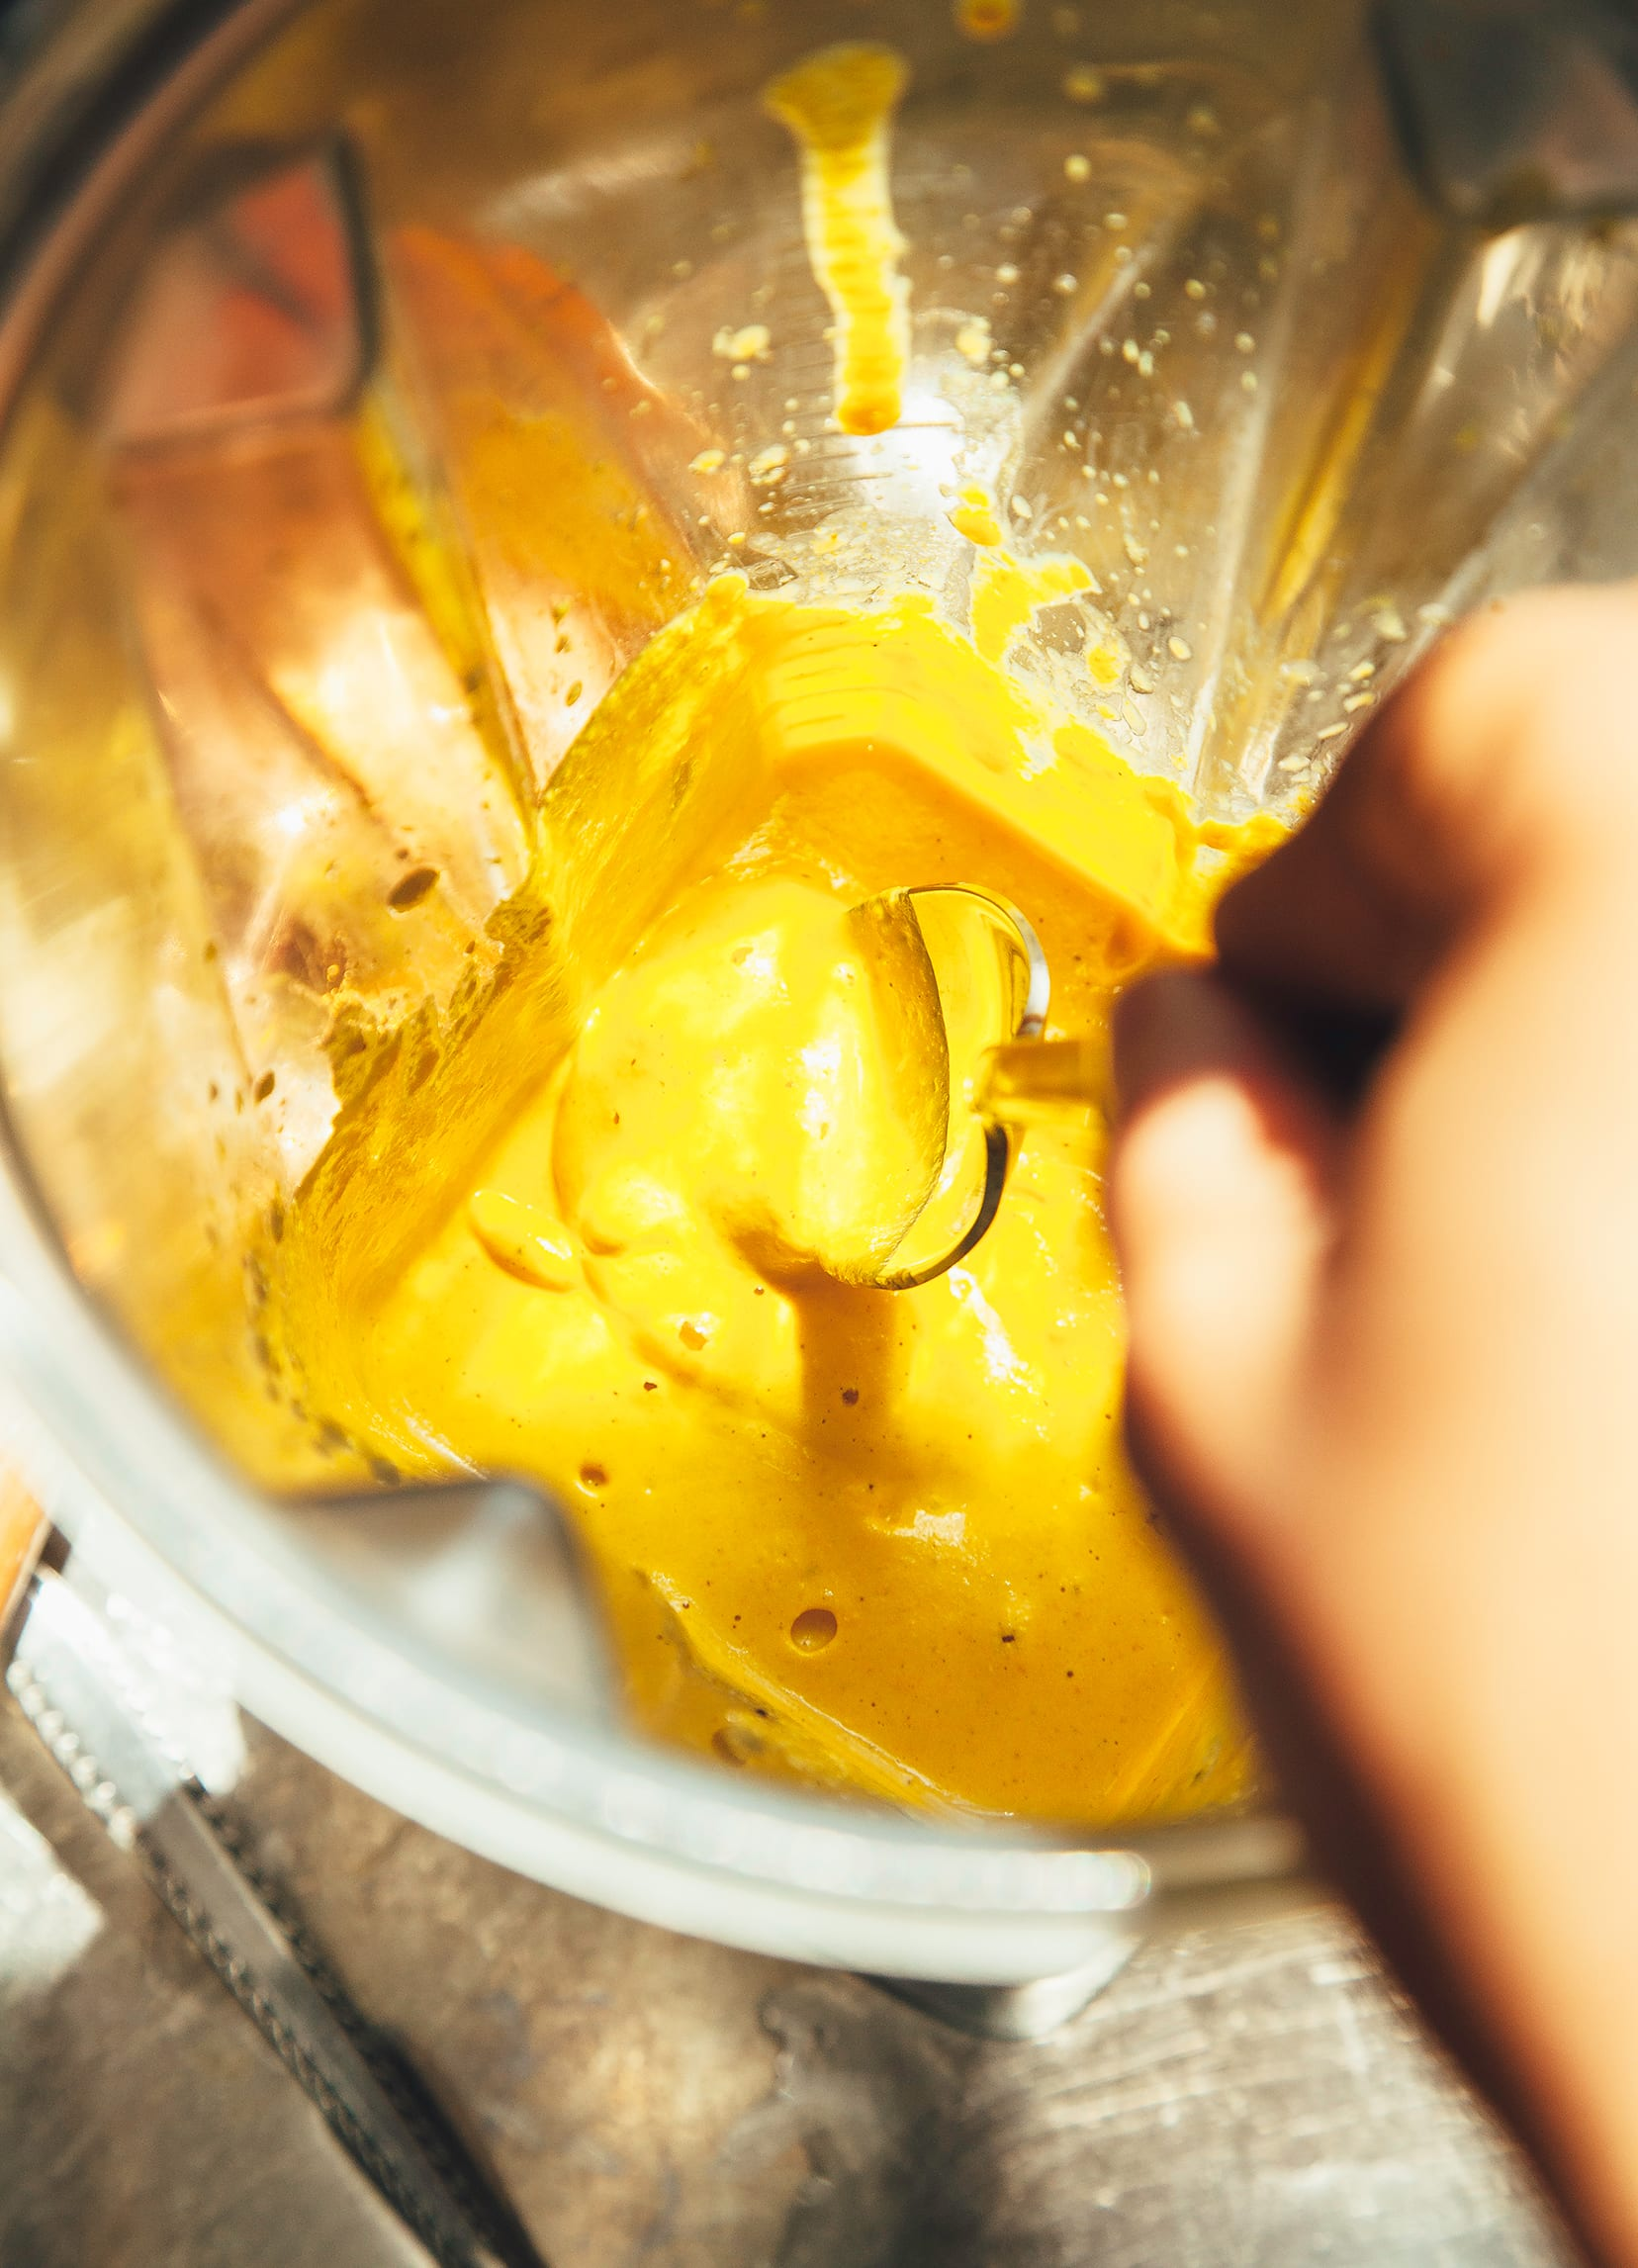 Image shows hand dipping a spoon into a blender of creamy, yellow sauce.